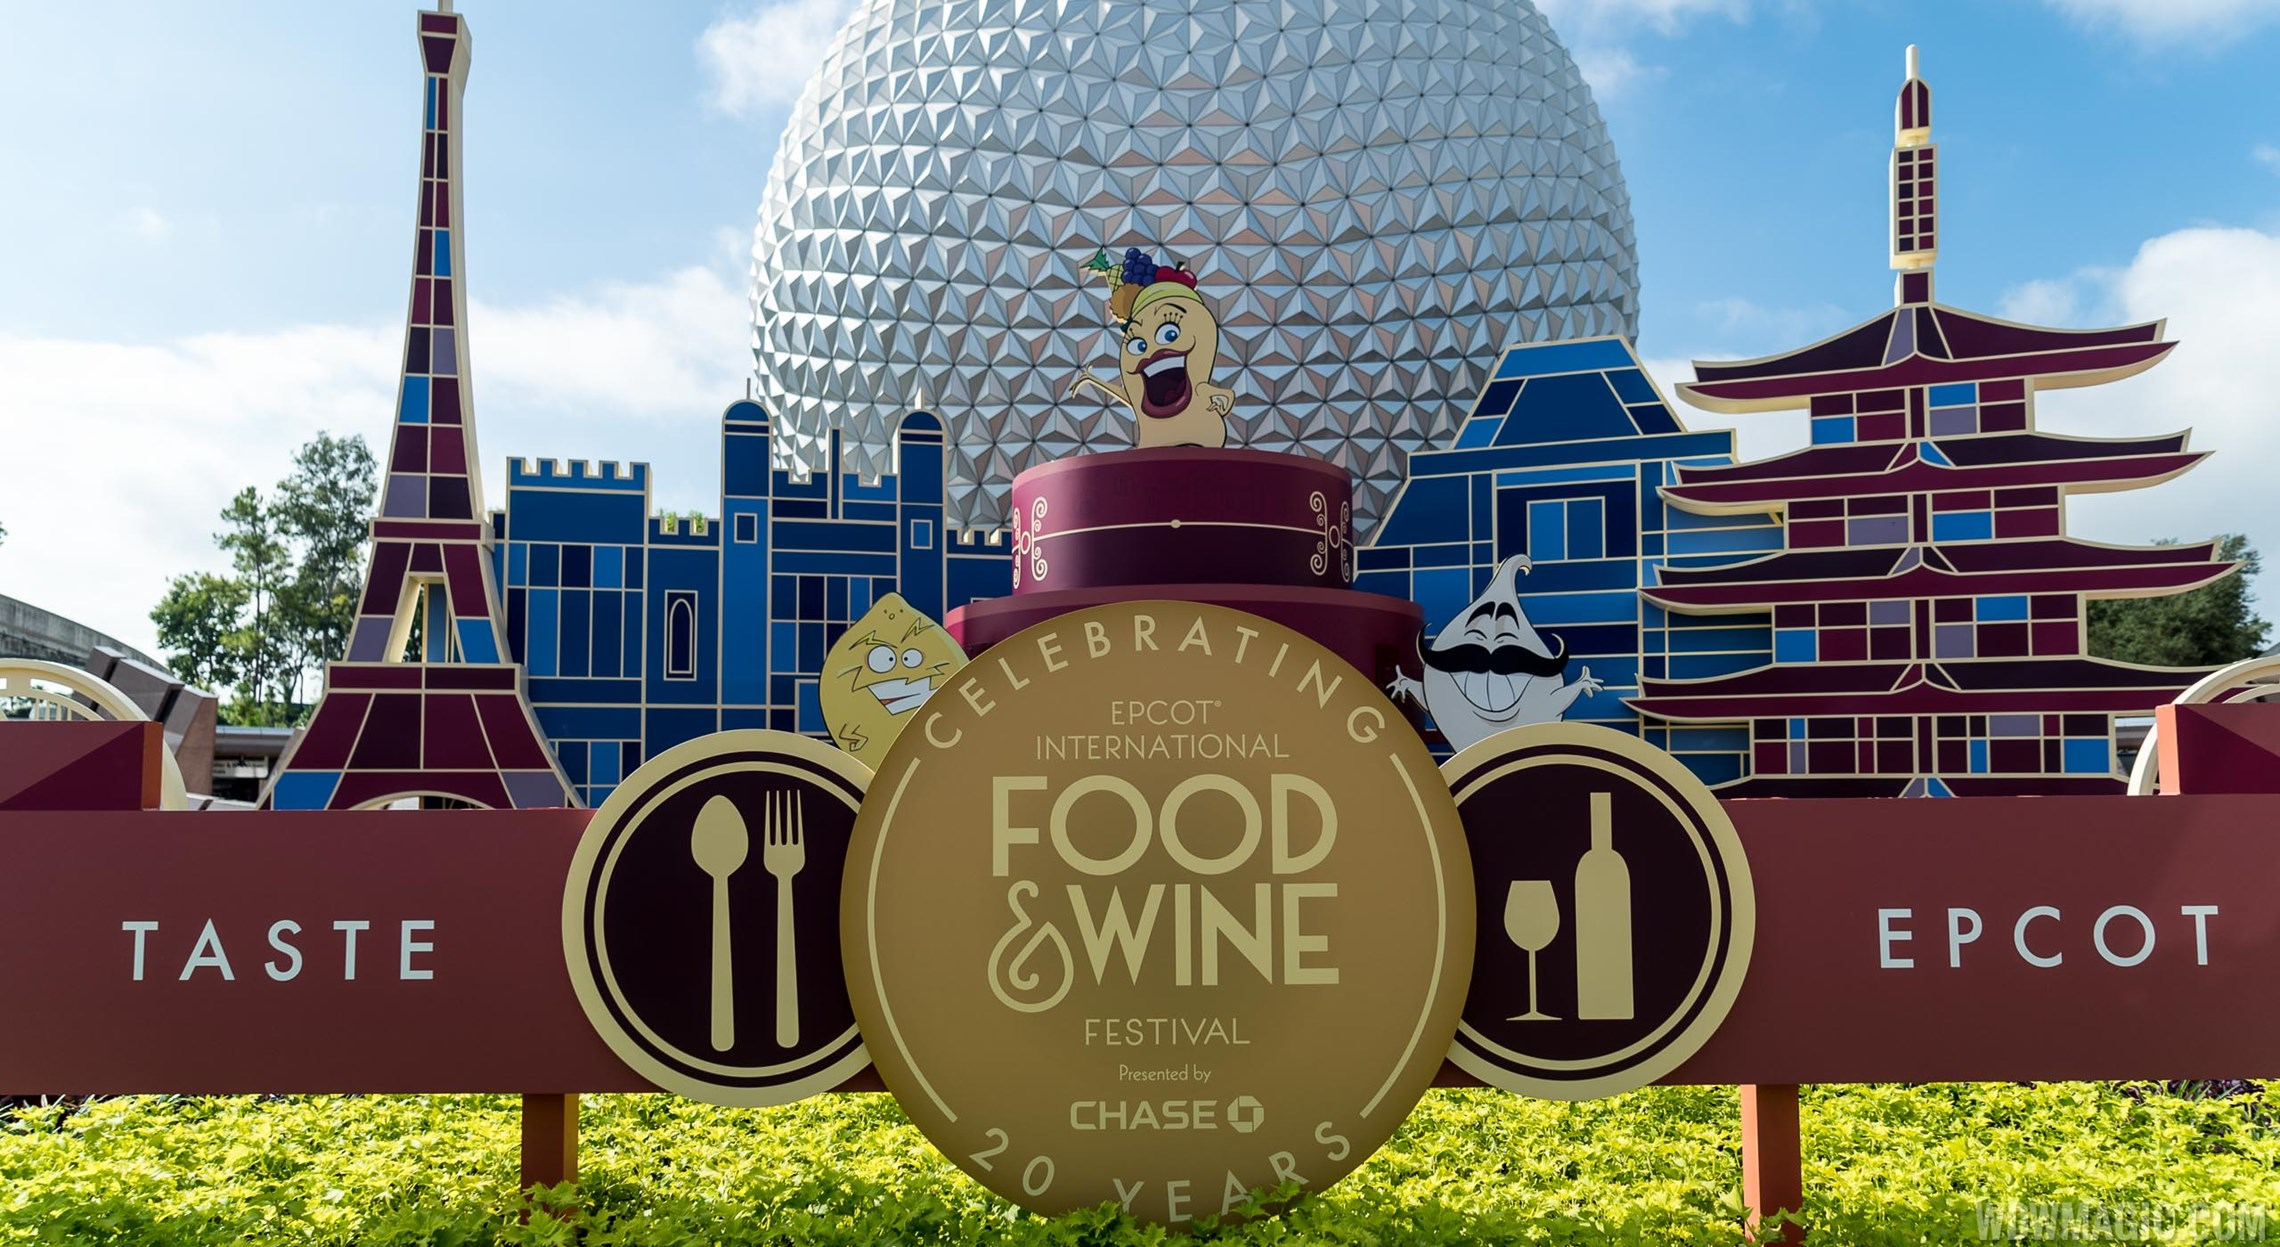 Guide to the 2015 Epcot Food and Wine Festival